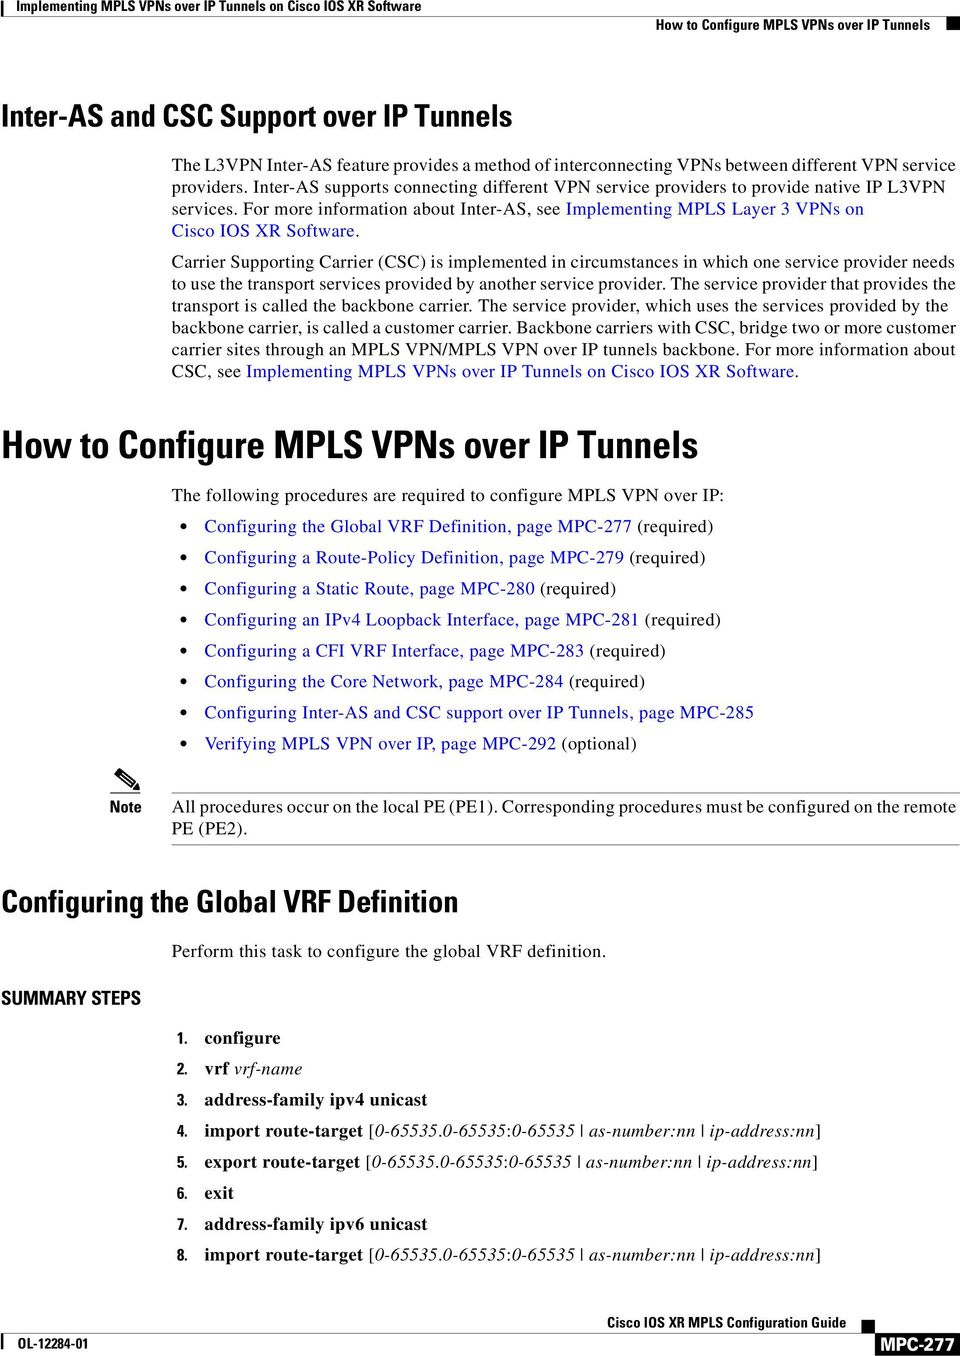 Implementing MPLS VPNs over IP Tunnels on Cisco IOS XR Software - PDF